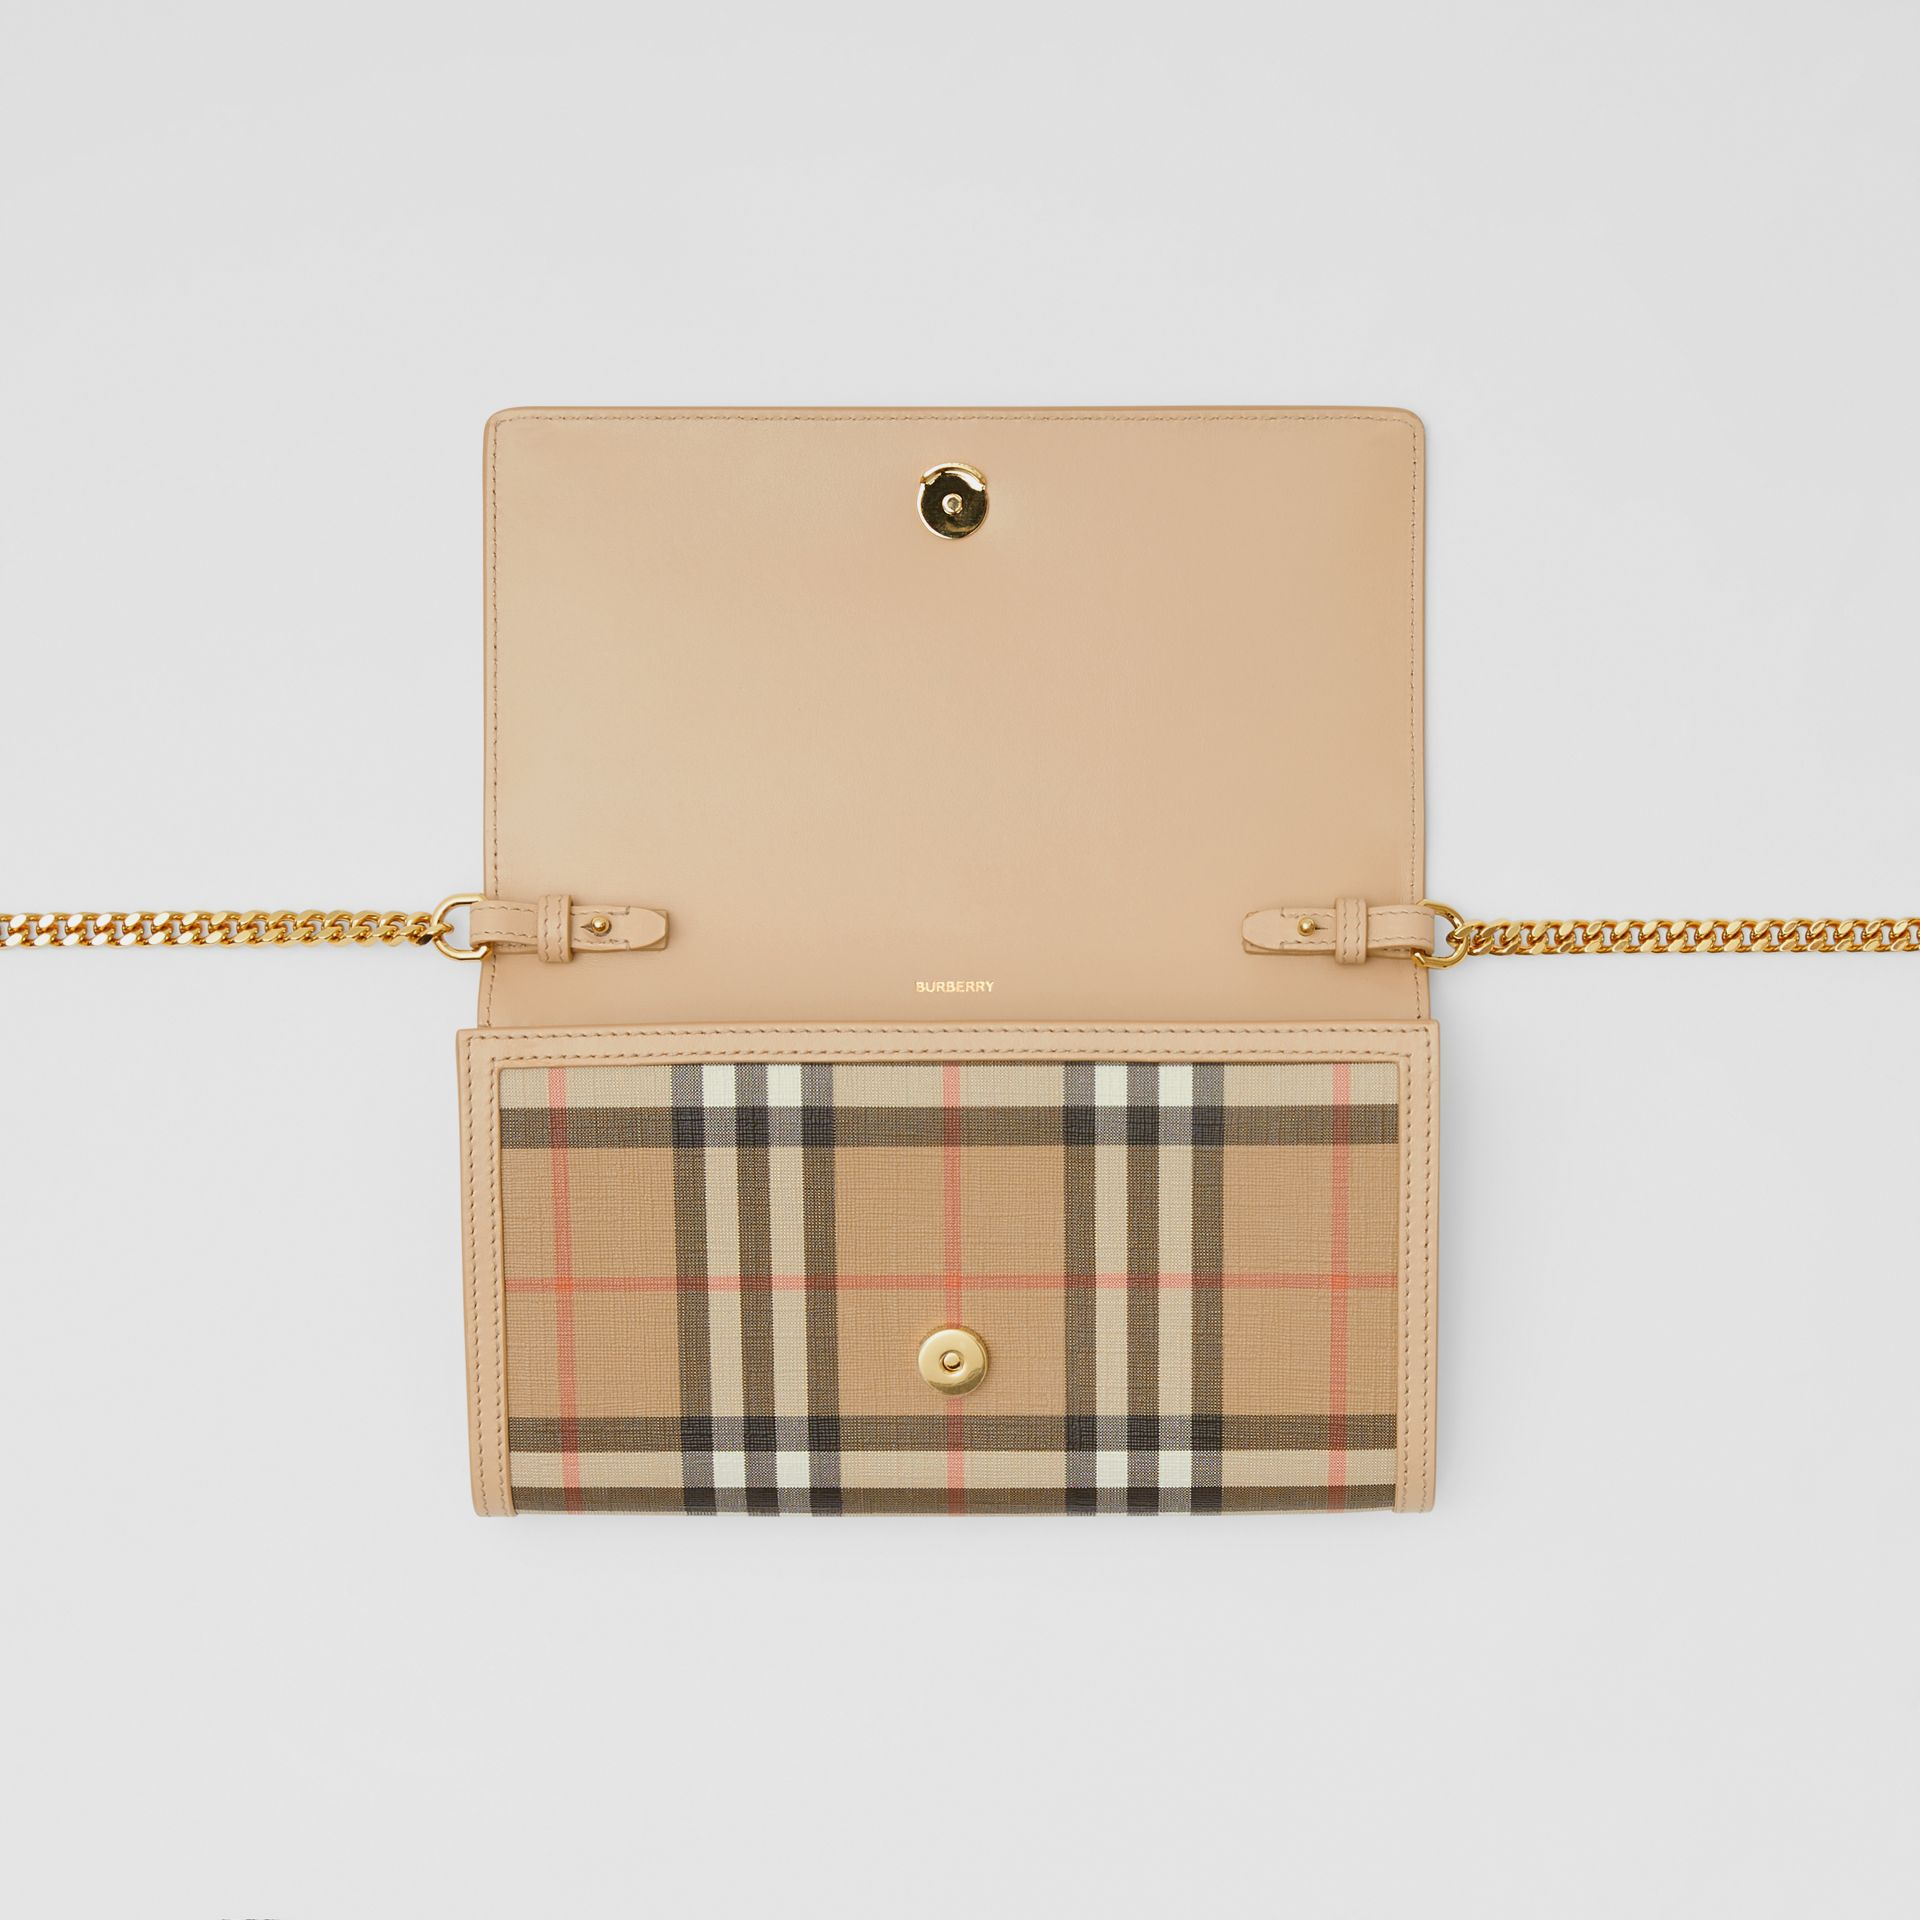 Vintage Check E-canvas Wallet with Detachable Strap in Beige - Women | Burberry Hong Kong S.A.R - gallery image 9